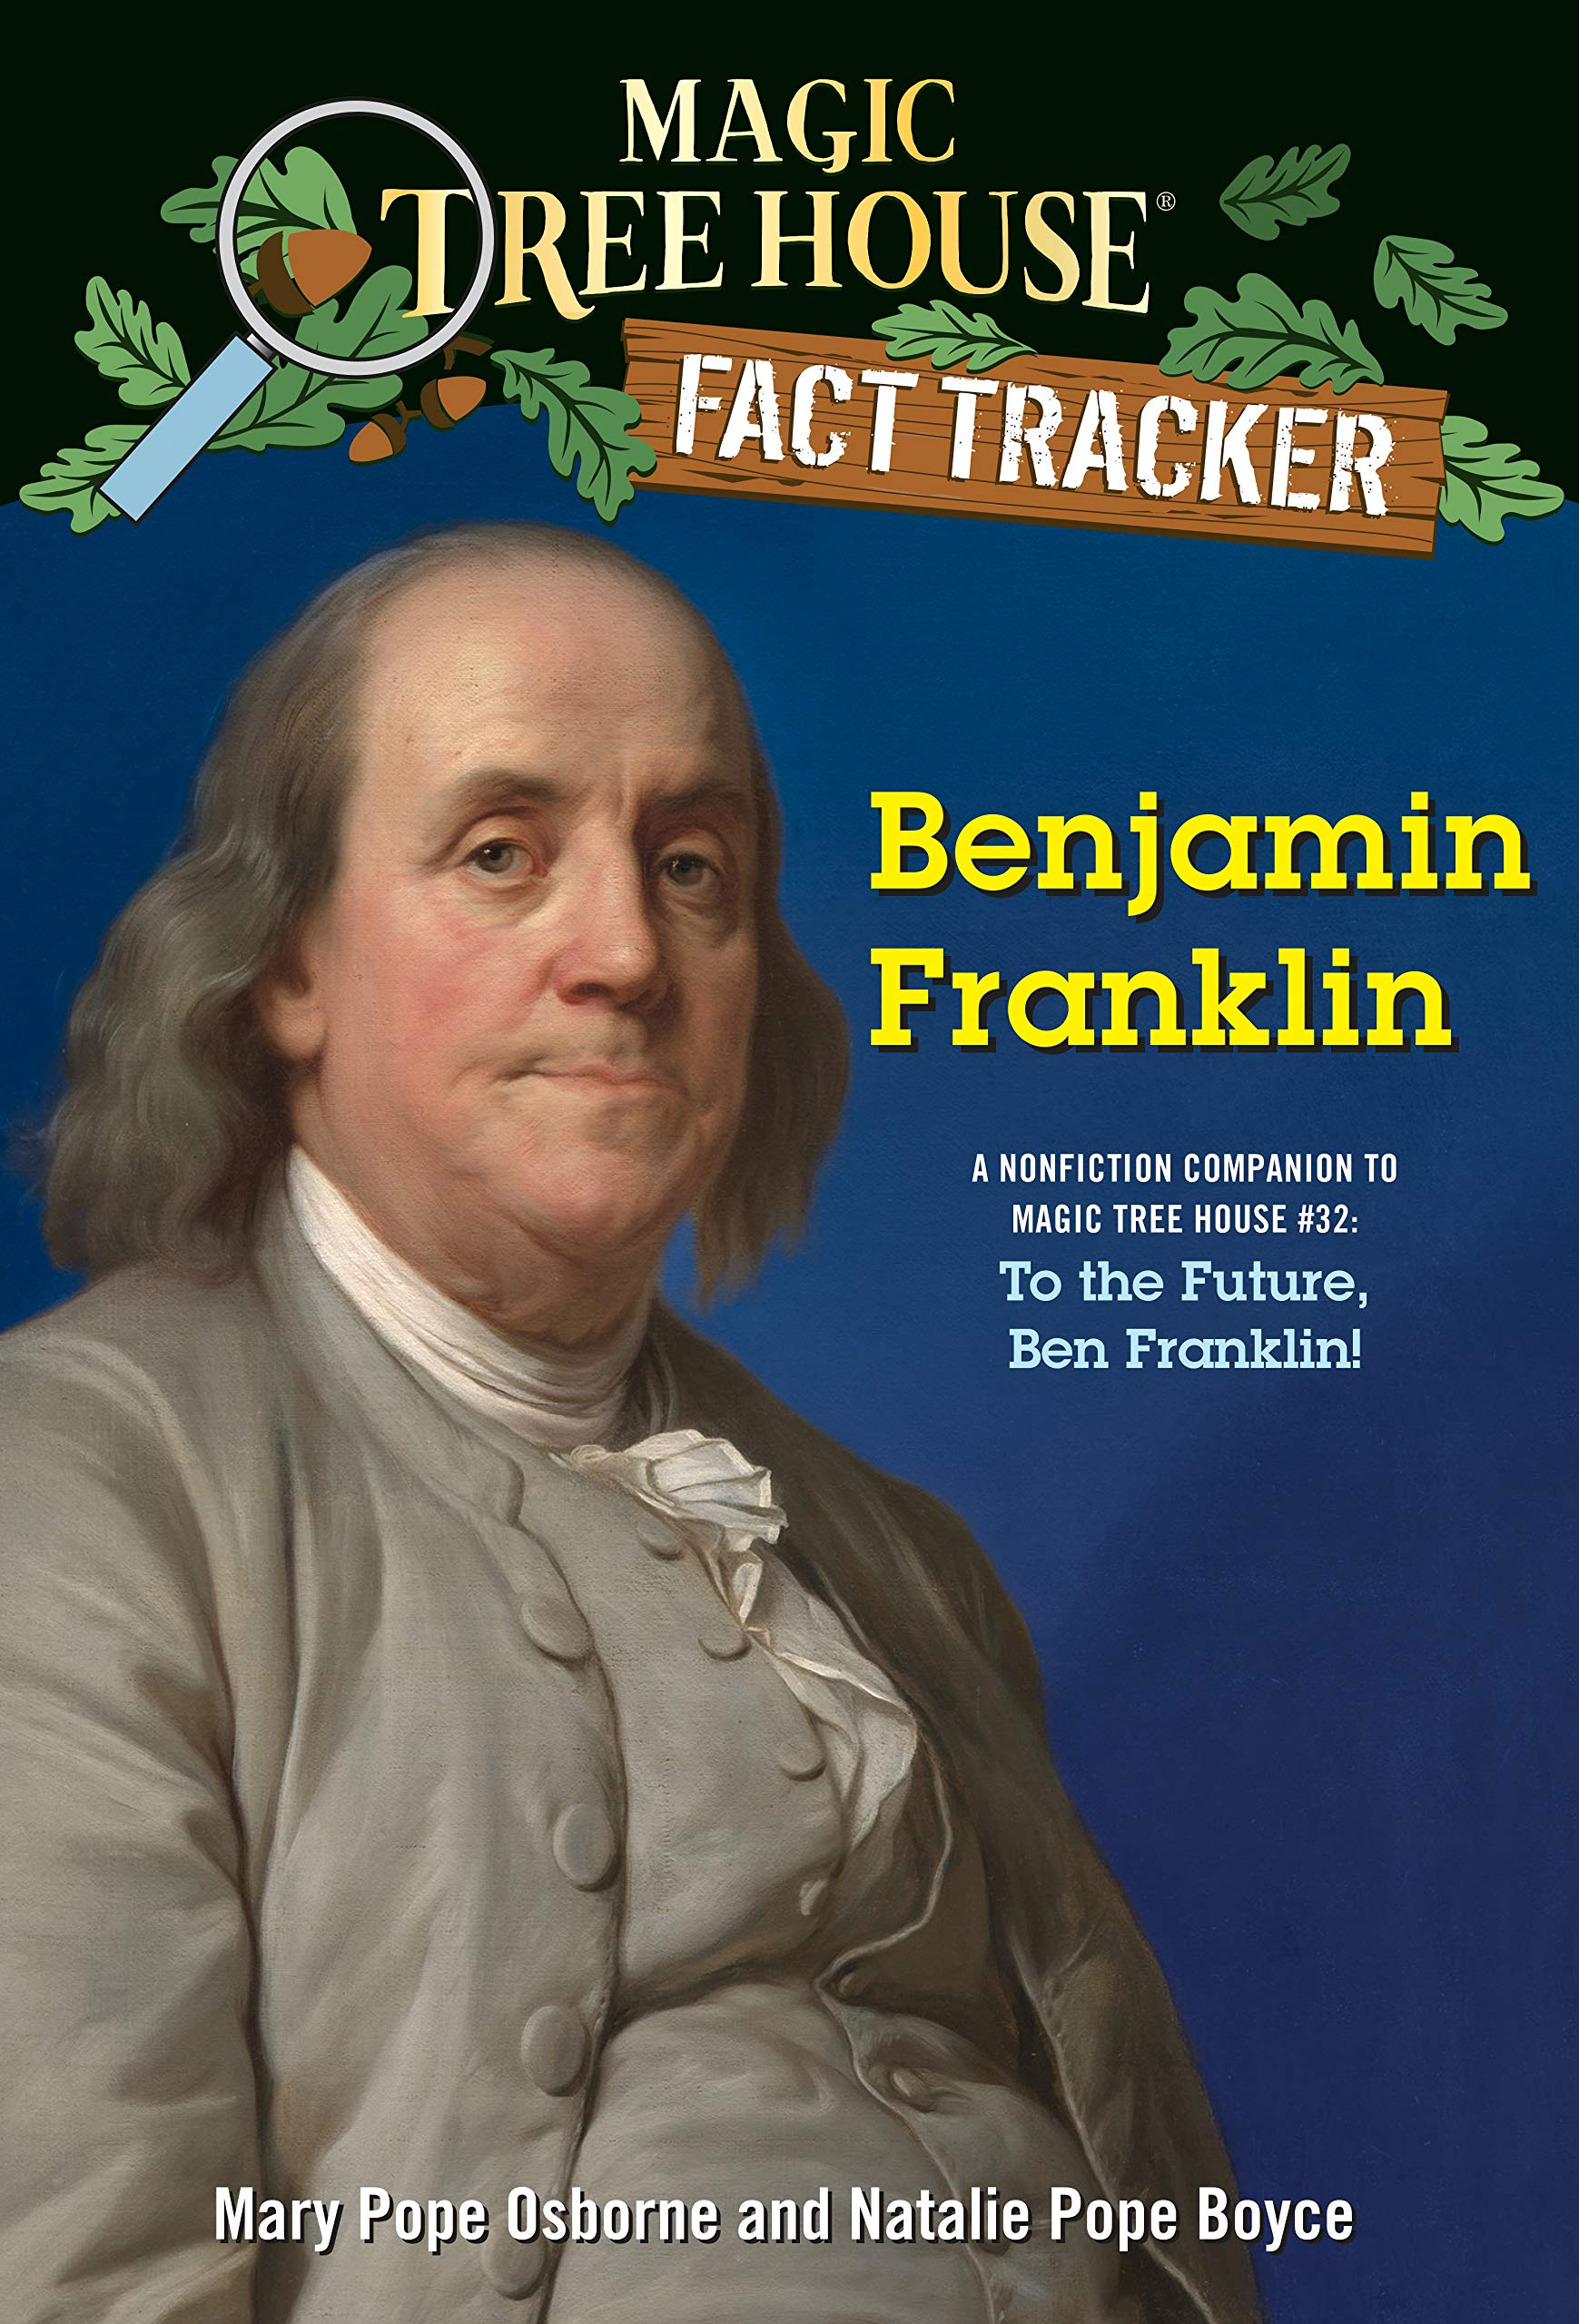 Image result for Mary Pope Osborne | Magic Tree House: To the Future, Ben Franklin! with Natalie Pope Boyce